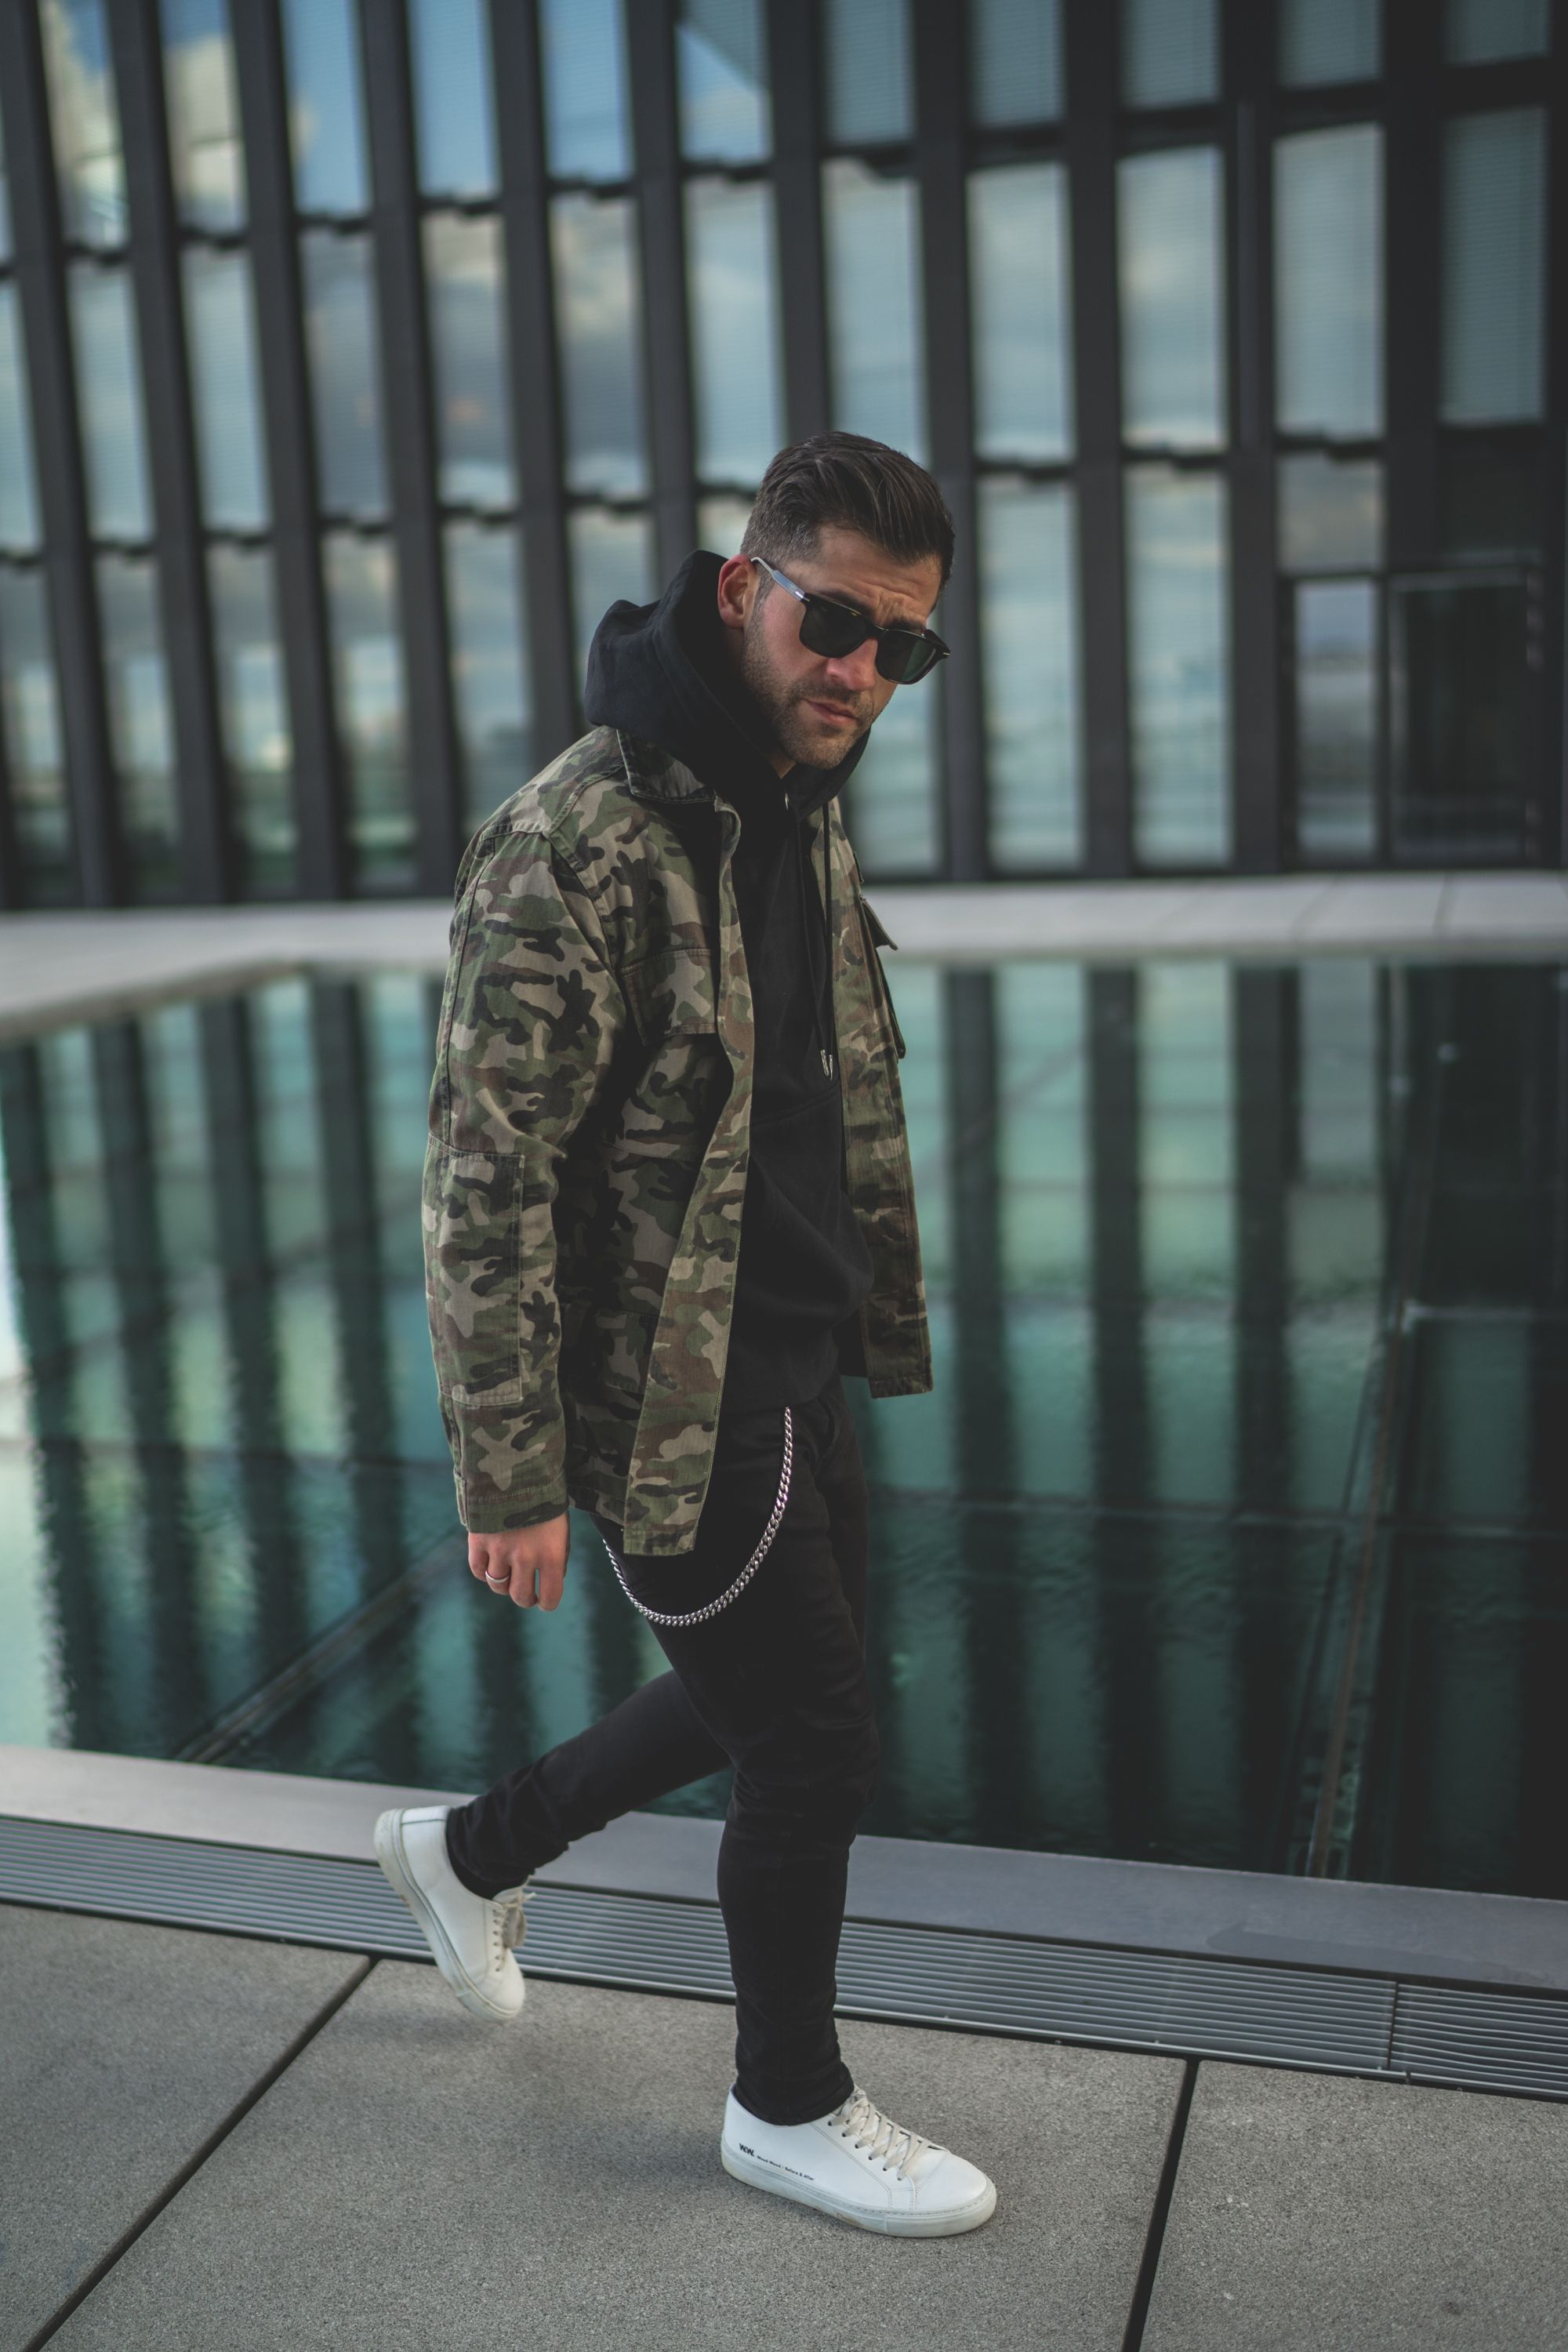 ARMY JACKET CAMOUFLAGE | Fitness fotografie, Camouflage